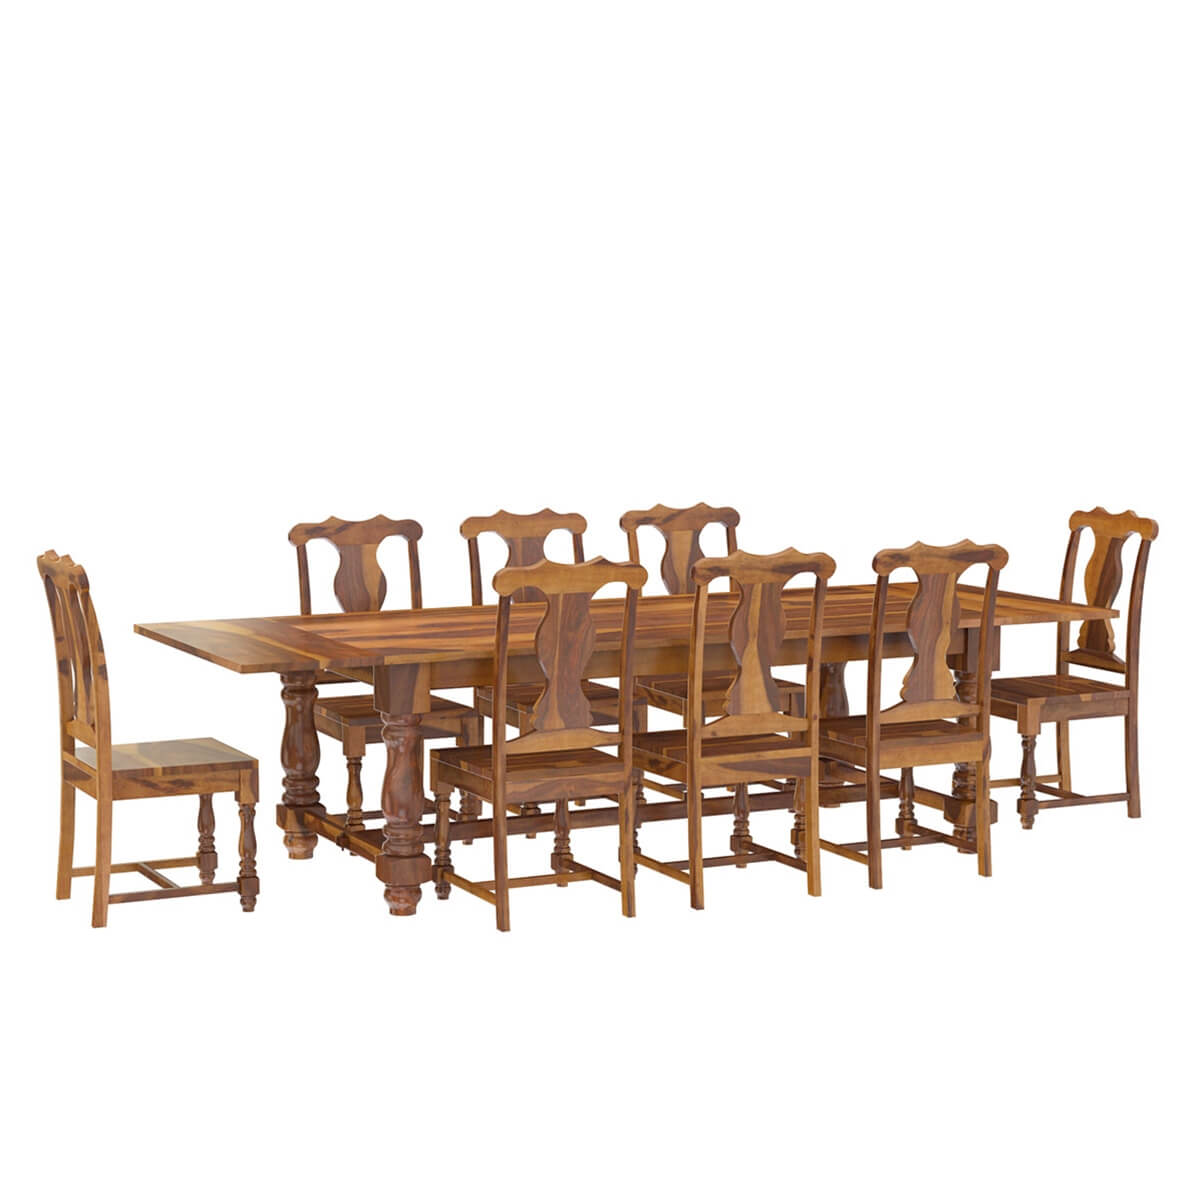 rustic solid wood dining table chair set furniture w extension. Black Bedroom Furniture Sets. Home Design Ideas